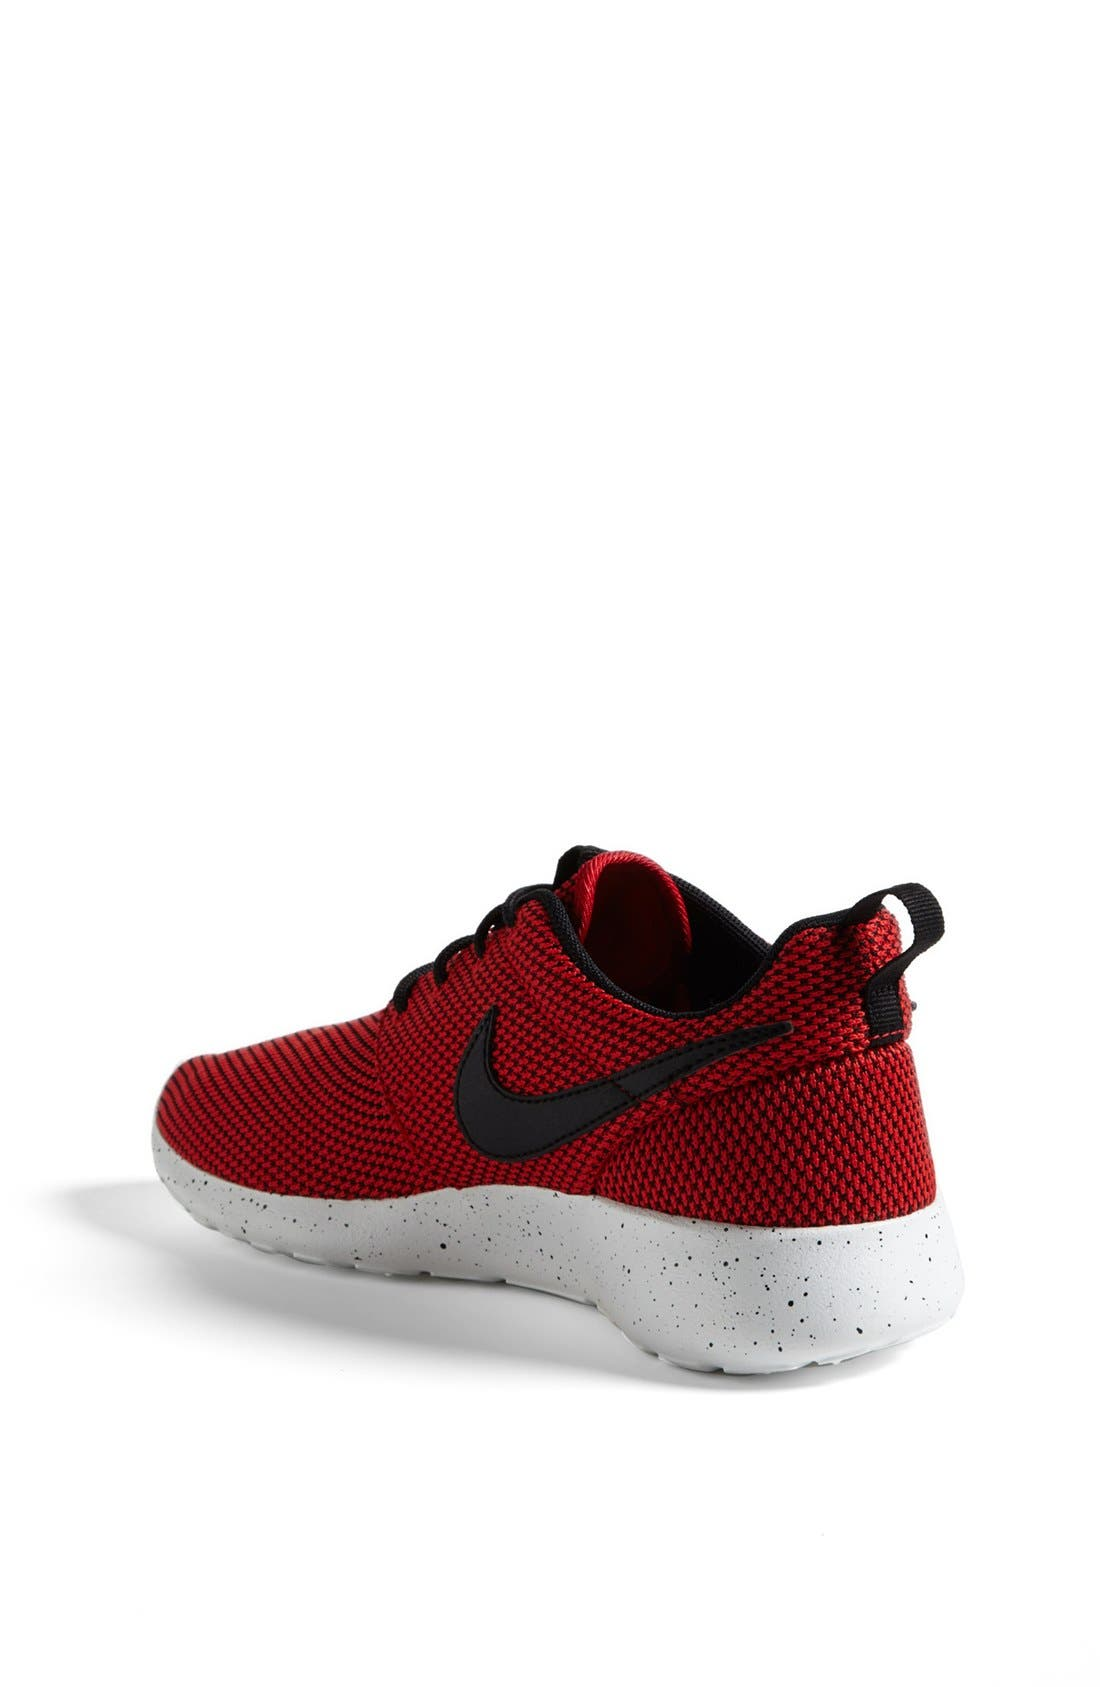 'Roshe Run' Sneaker,                             Alternate thumbnail 96, color,